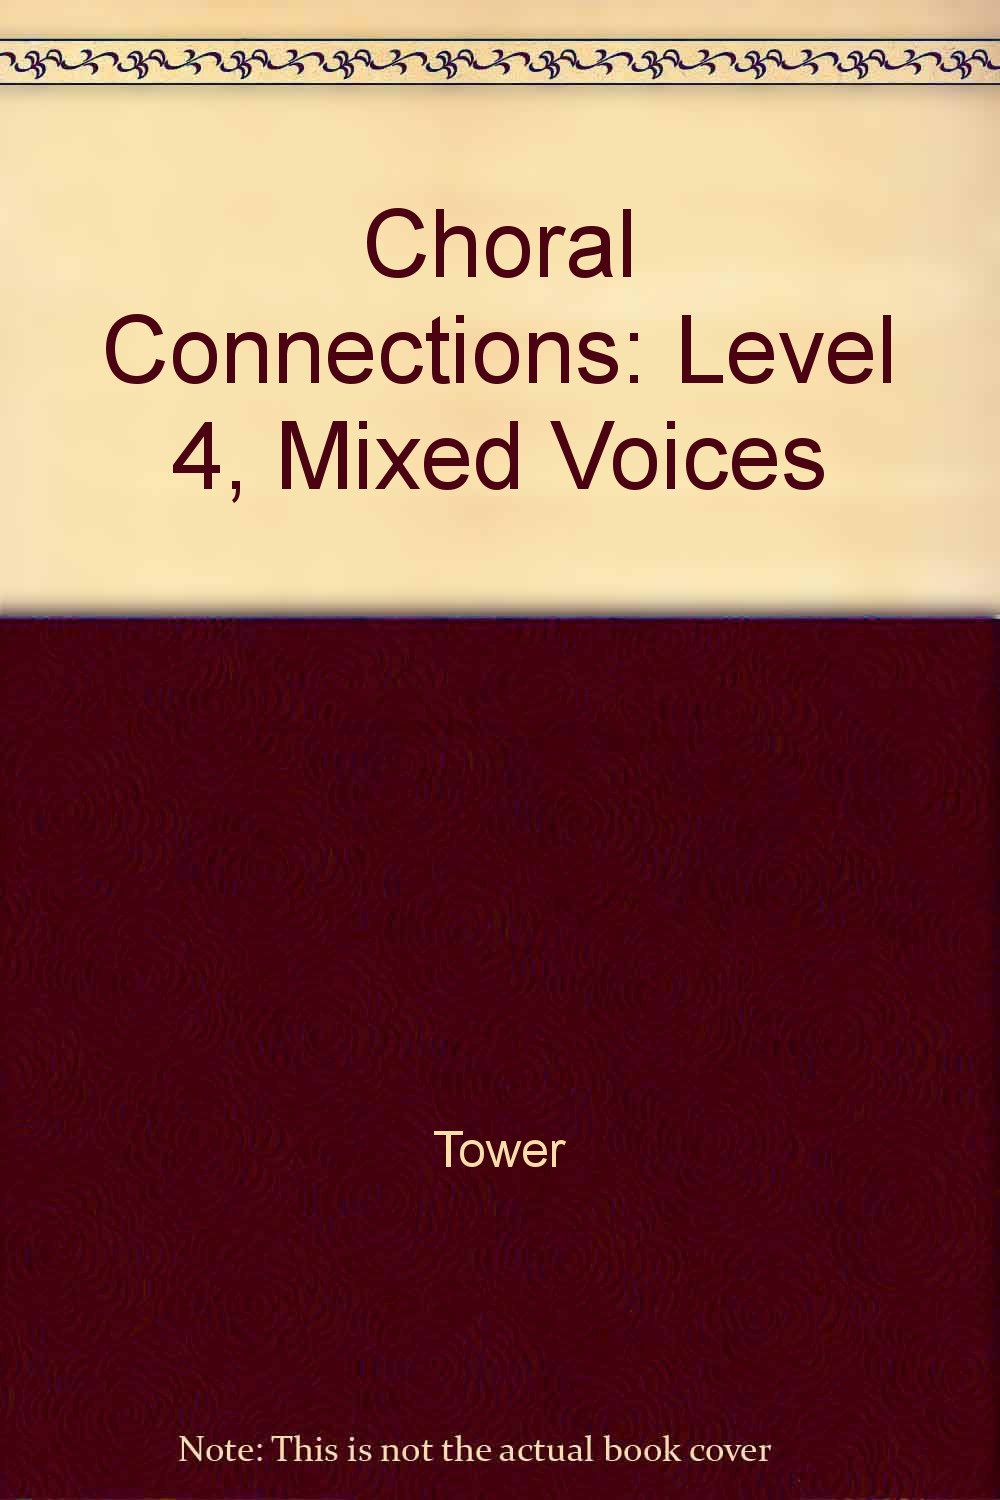 Choral Connections: Level 4, Mixed Voices